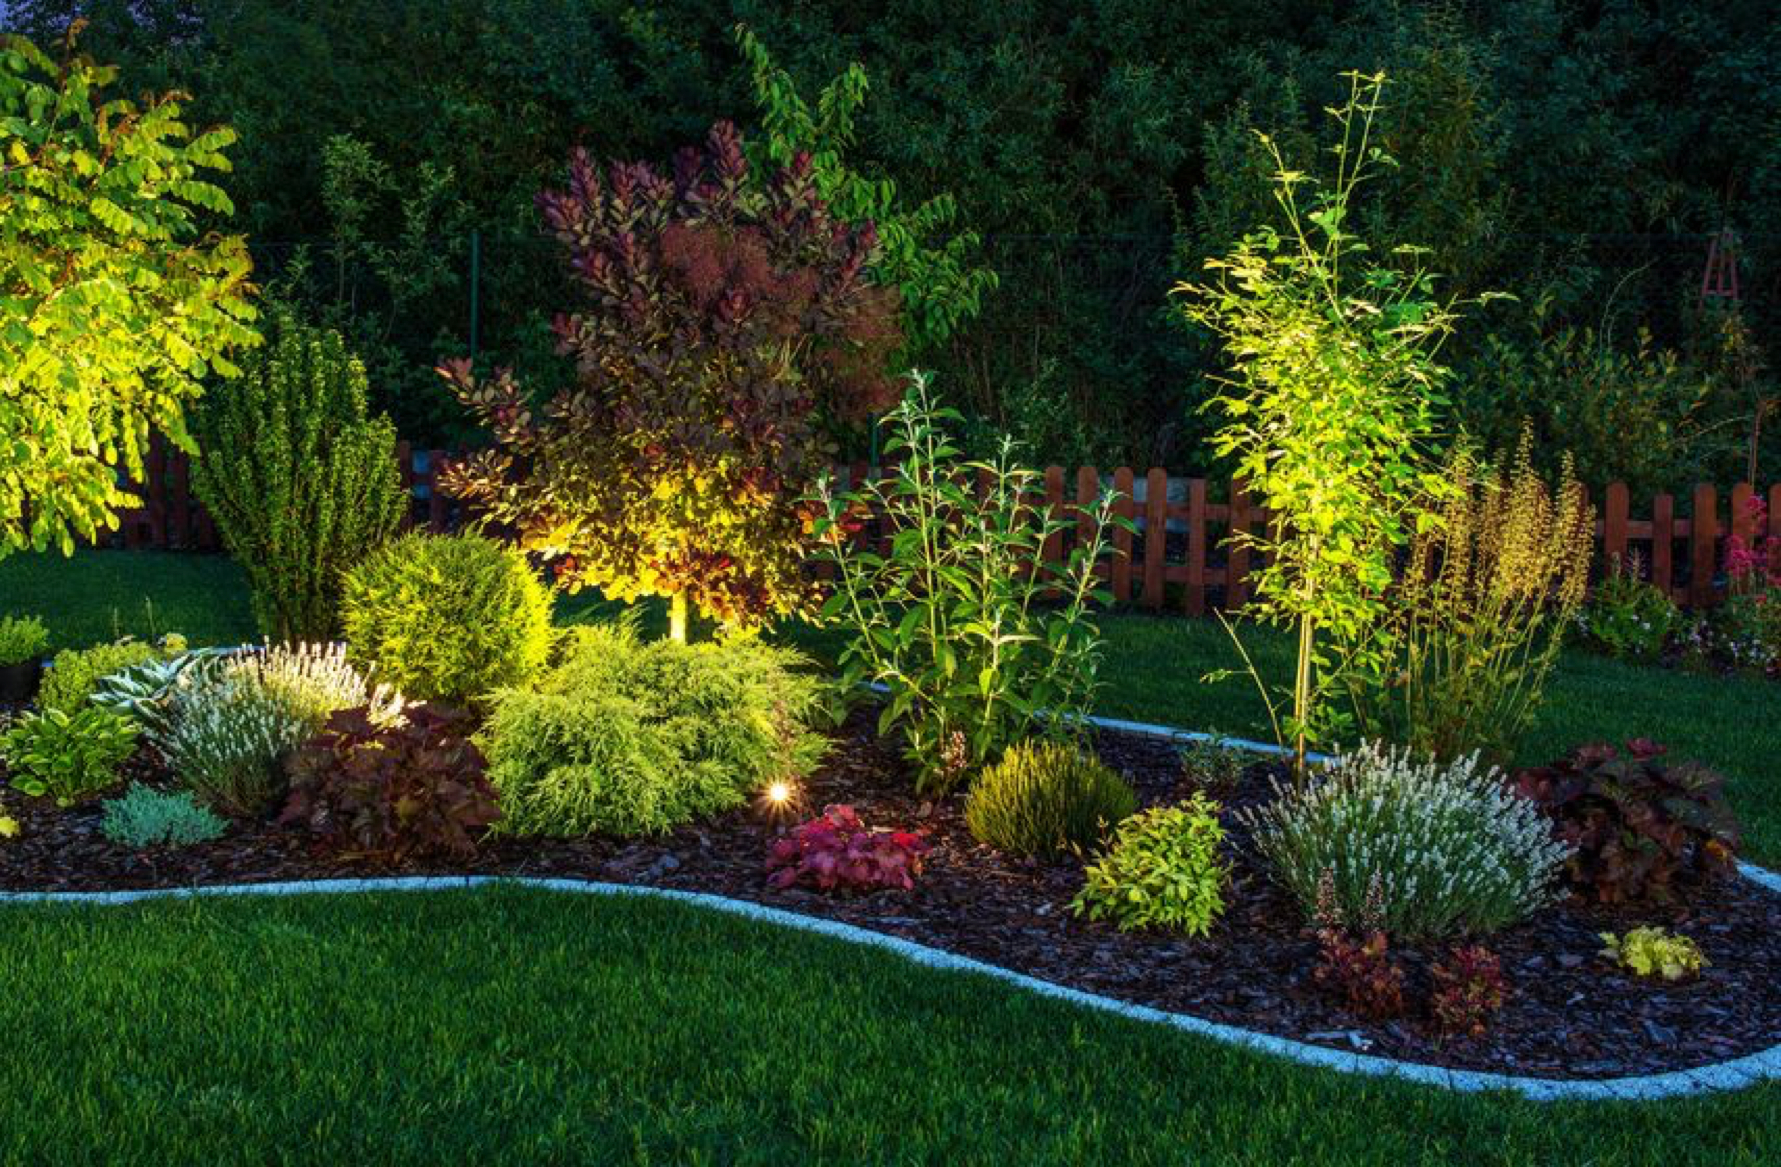 Front Yard Landscaping Ideas Garden And Landscaping inside Front And Backyard Landscaping Ideas